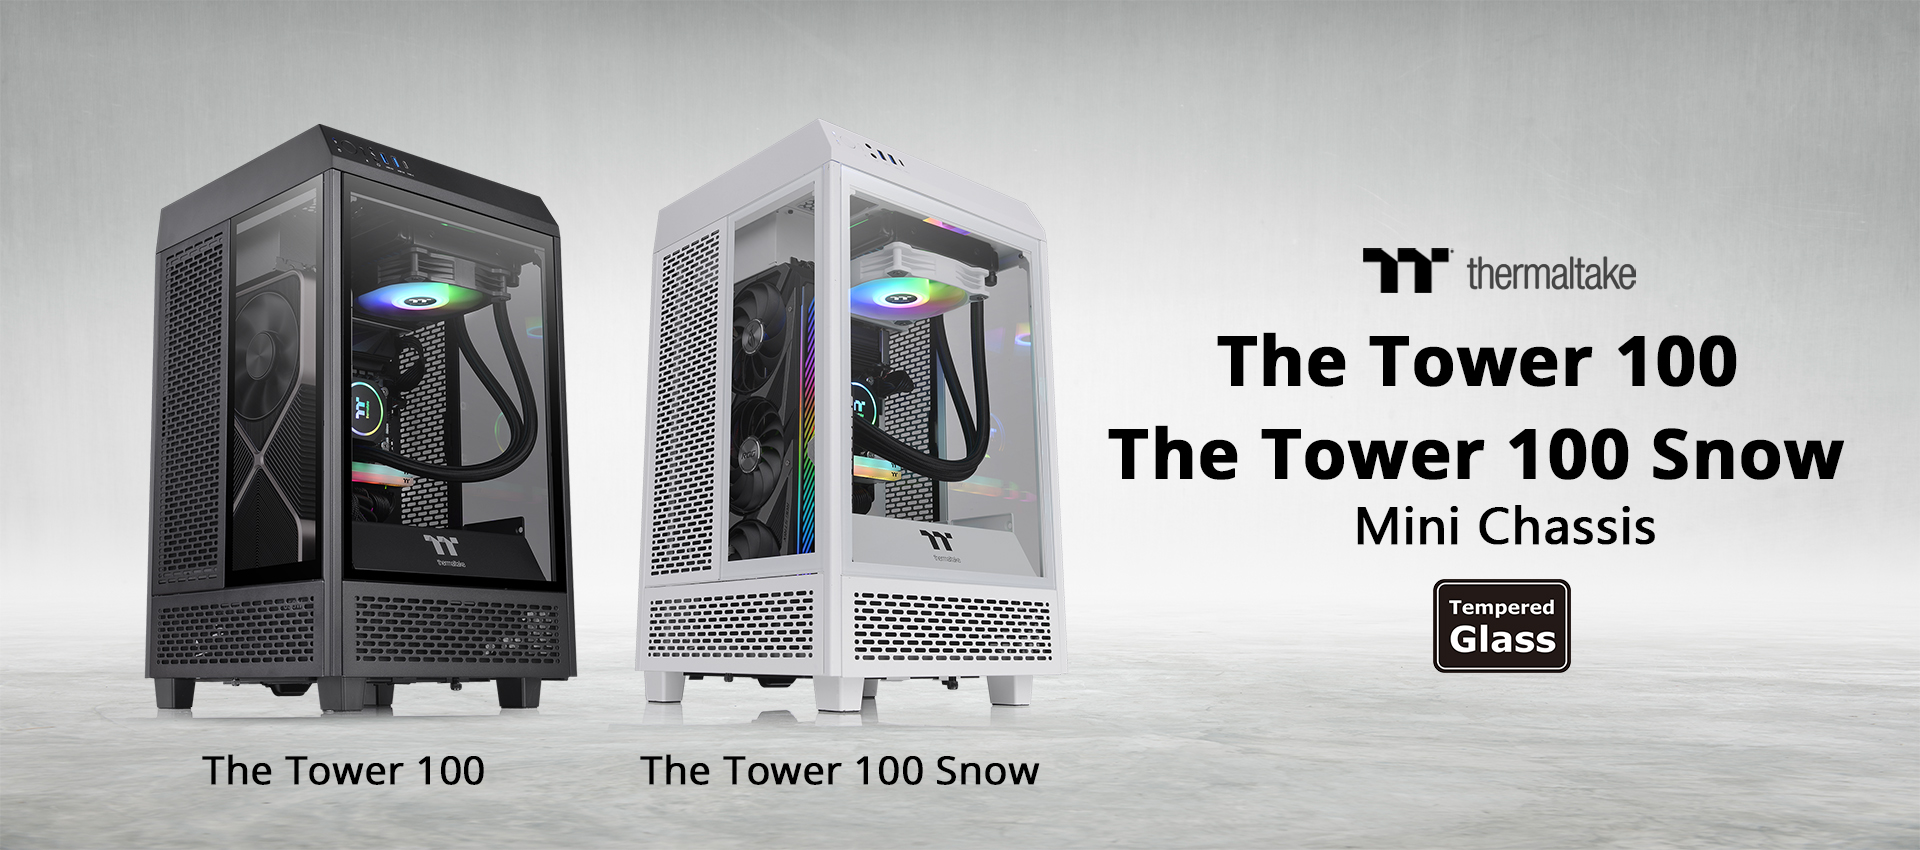 the-tower-100-mini-chassis